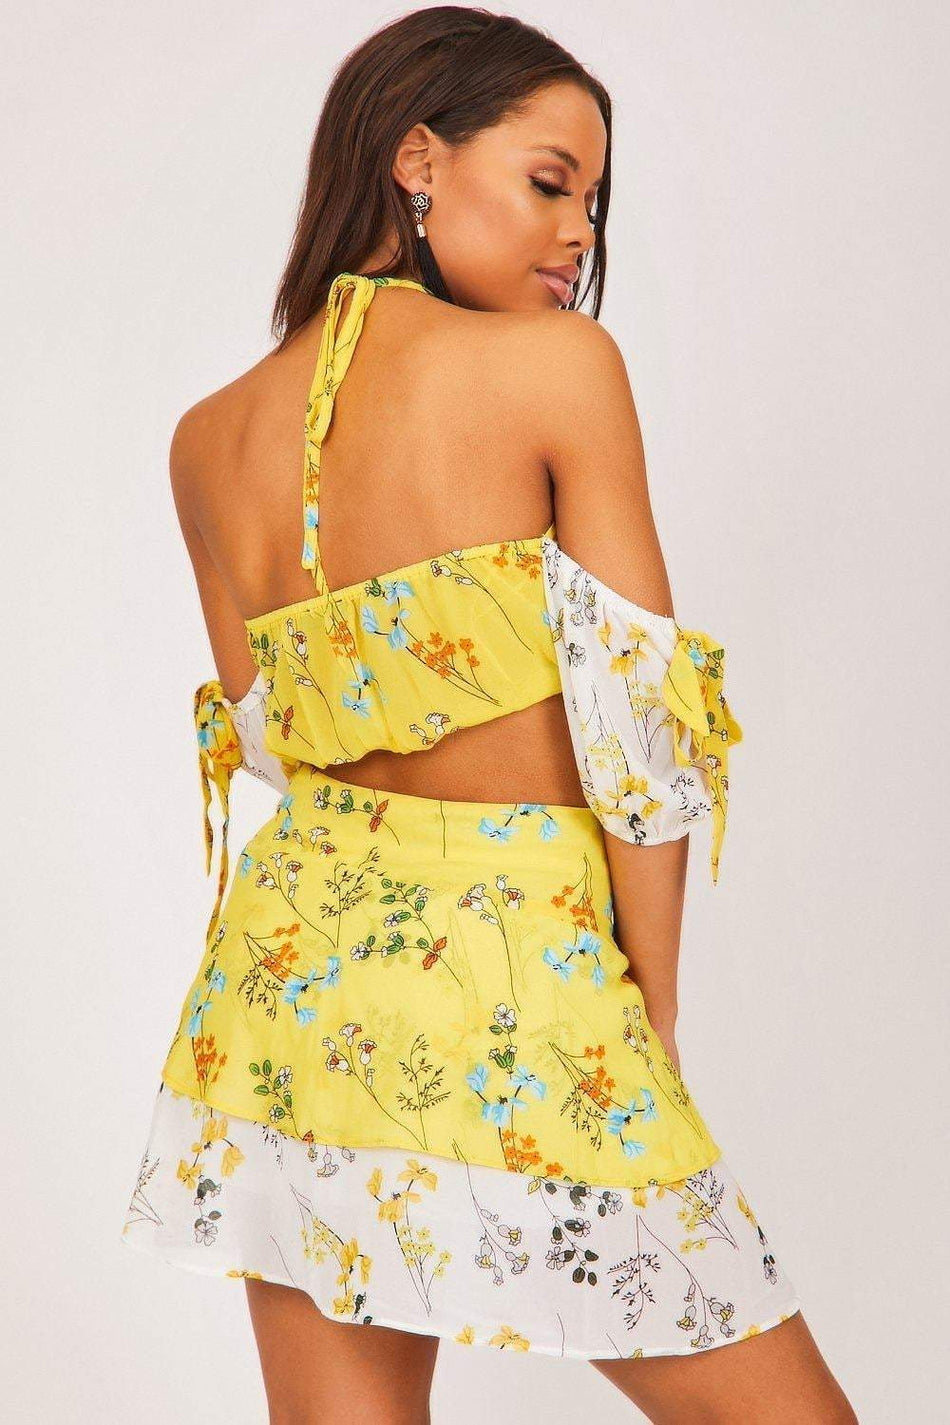 Yellow Floral Tie Front Skirt - KATCH ME